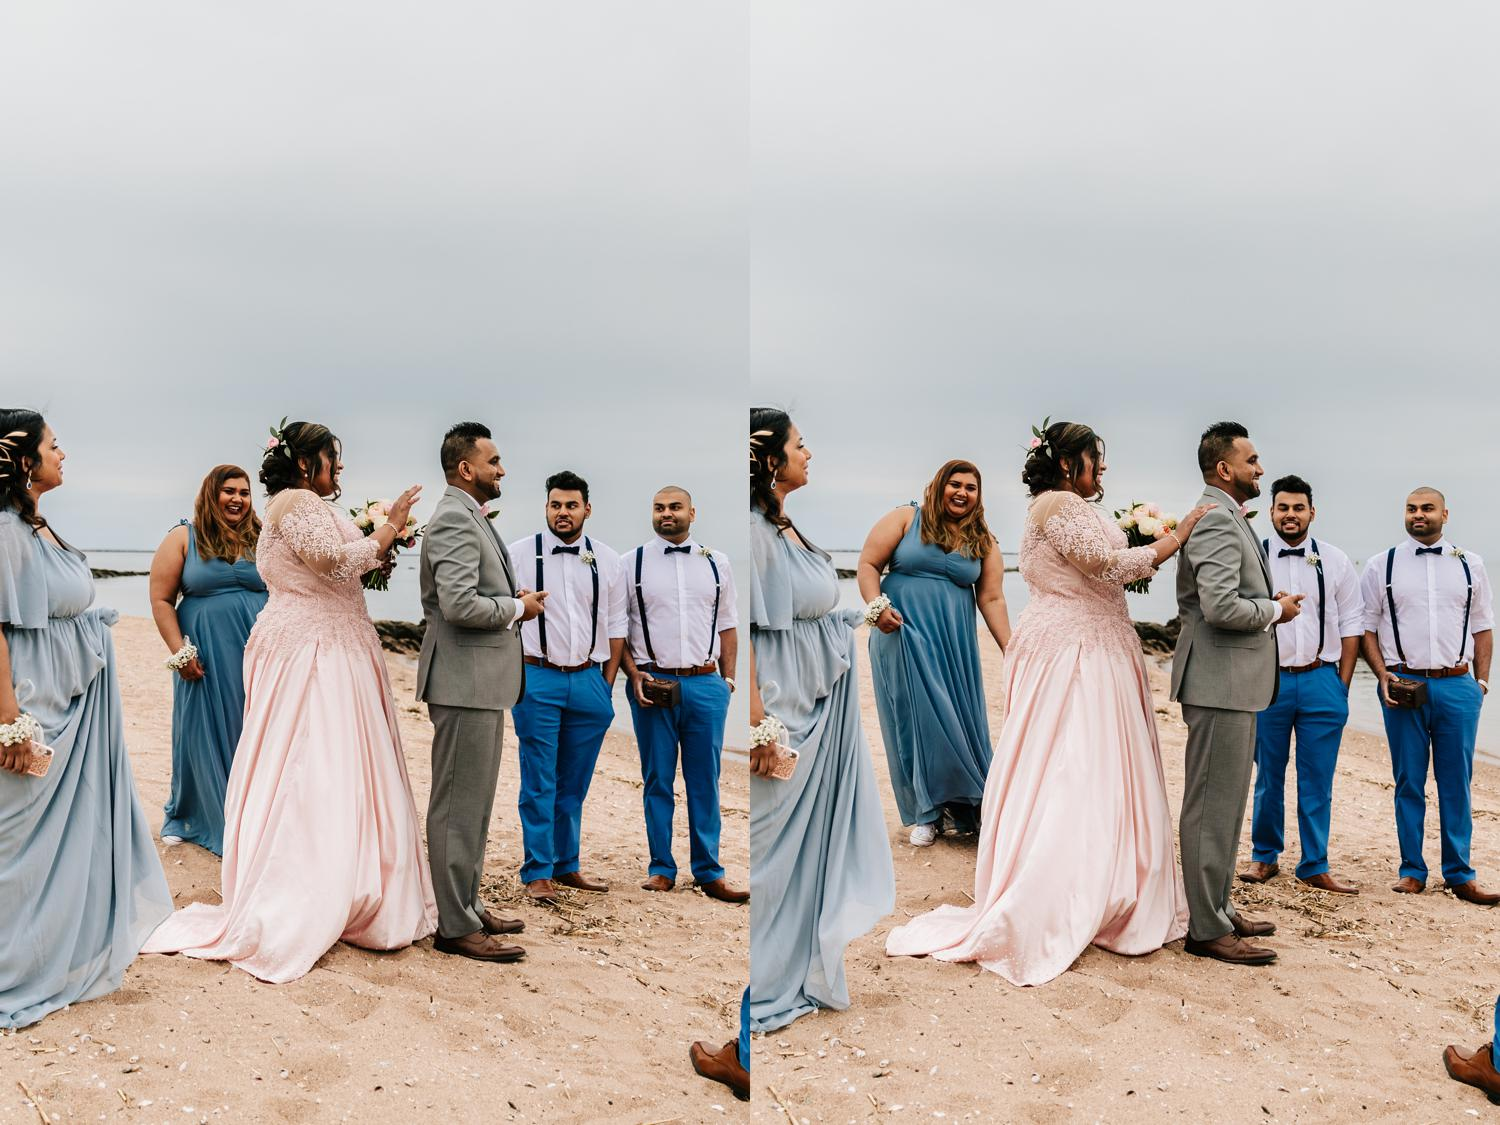 First look surrounded by bridal party on beach